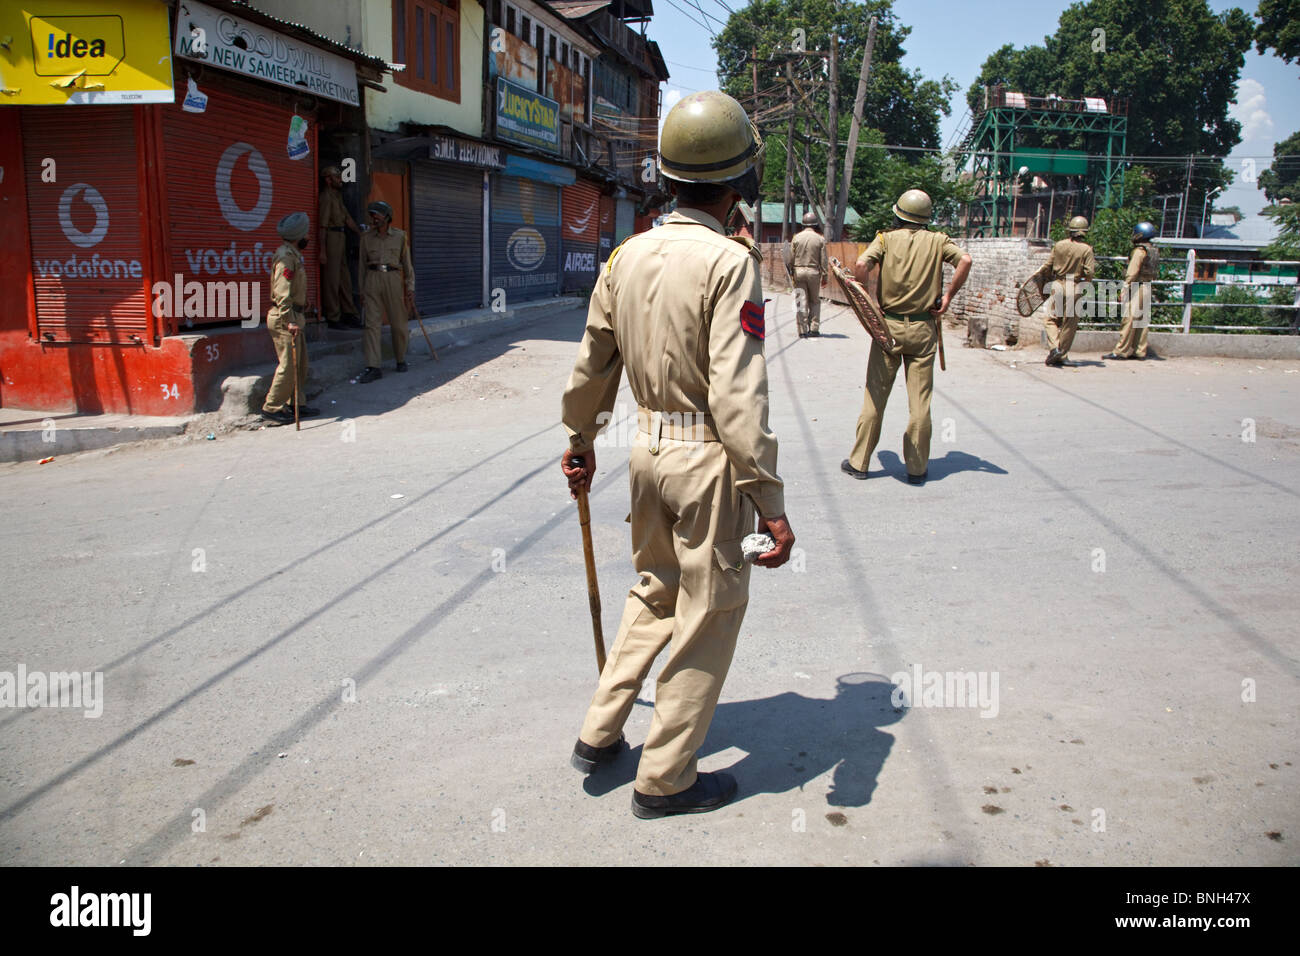 Police fights with teenagers throwing stones at them during the riots in Srinagar, Jammu and Kashmir, India. - Stock Image